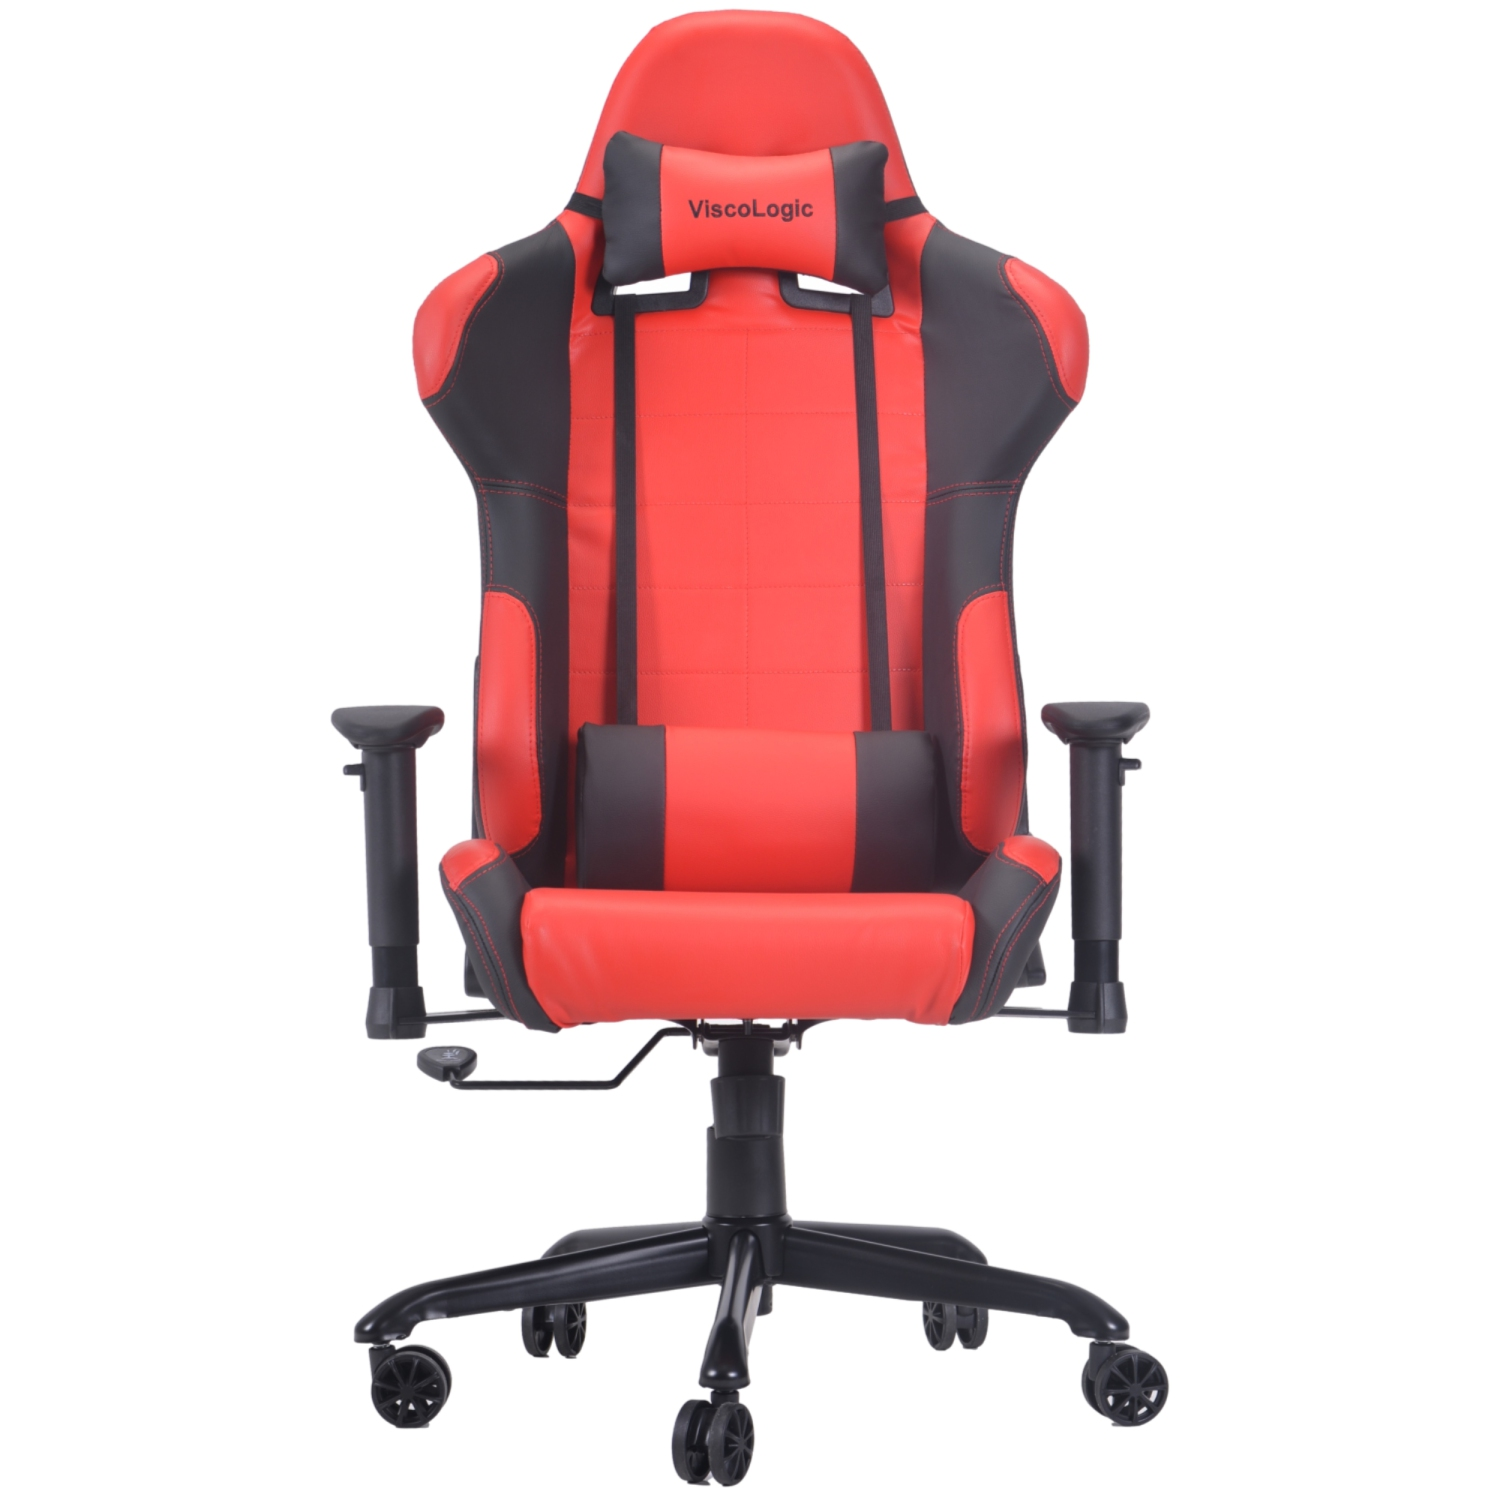 ViscoLogic Series CAYENNE Gaming Racing Style Swivel fice Chair